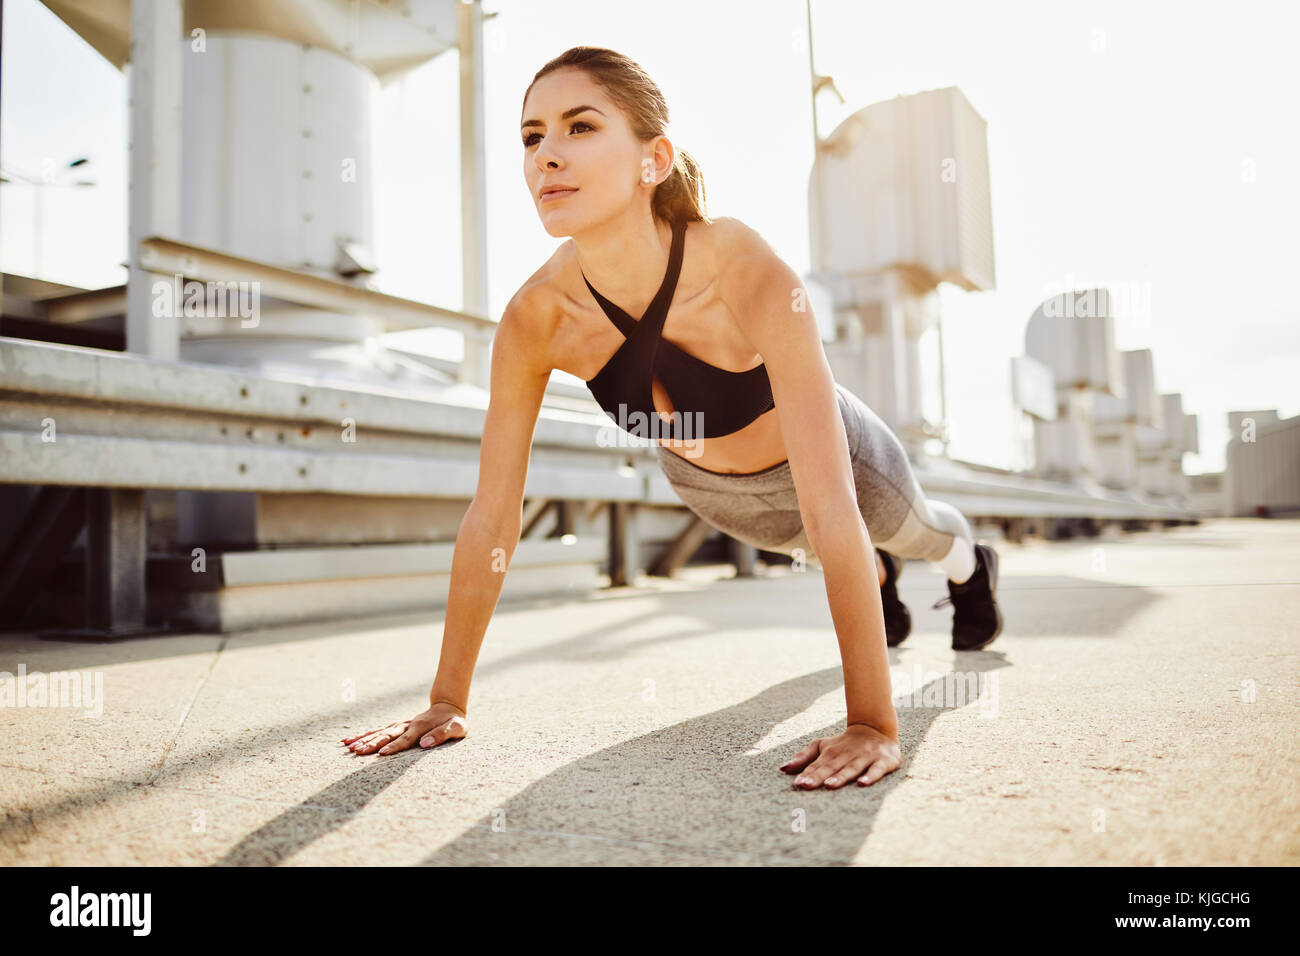 Young woman doing pushups in the city - Stock Image